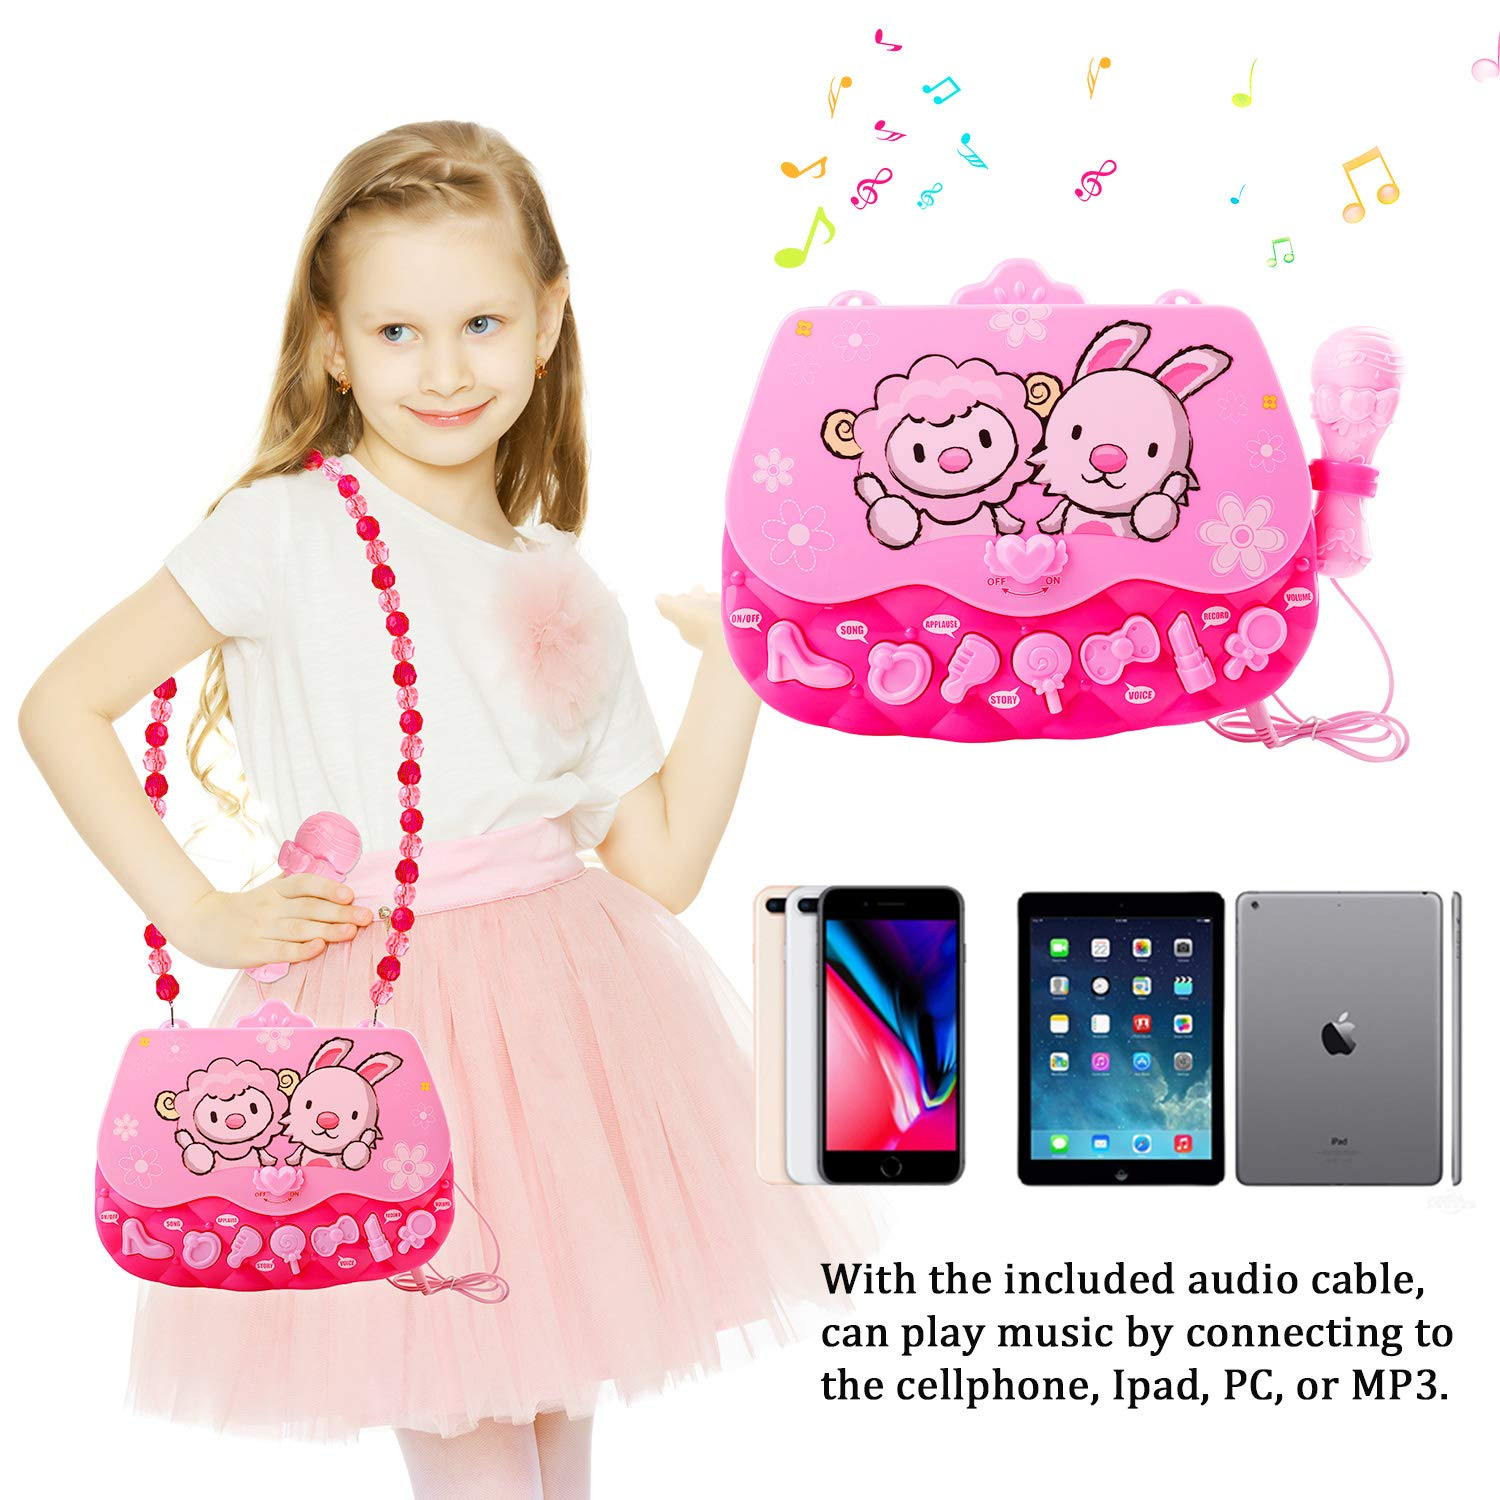 M SANMERSEN Karaoke Machine Toys for 3-6 Year Old Girls, Portable Musical Bag with Microphone Karaoke Player Toys for Girls Gifts Age 3 4 5 6 Xmas Gifts Pink by M SANMERSEN (Image #2)